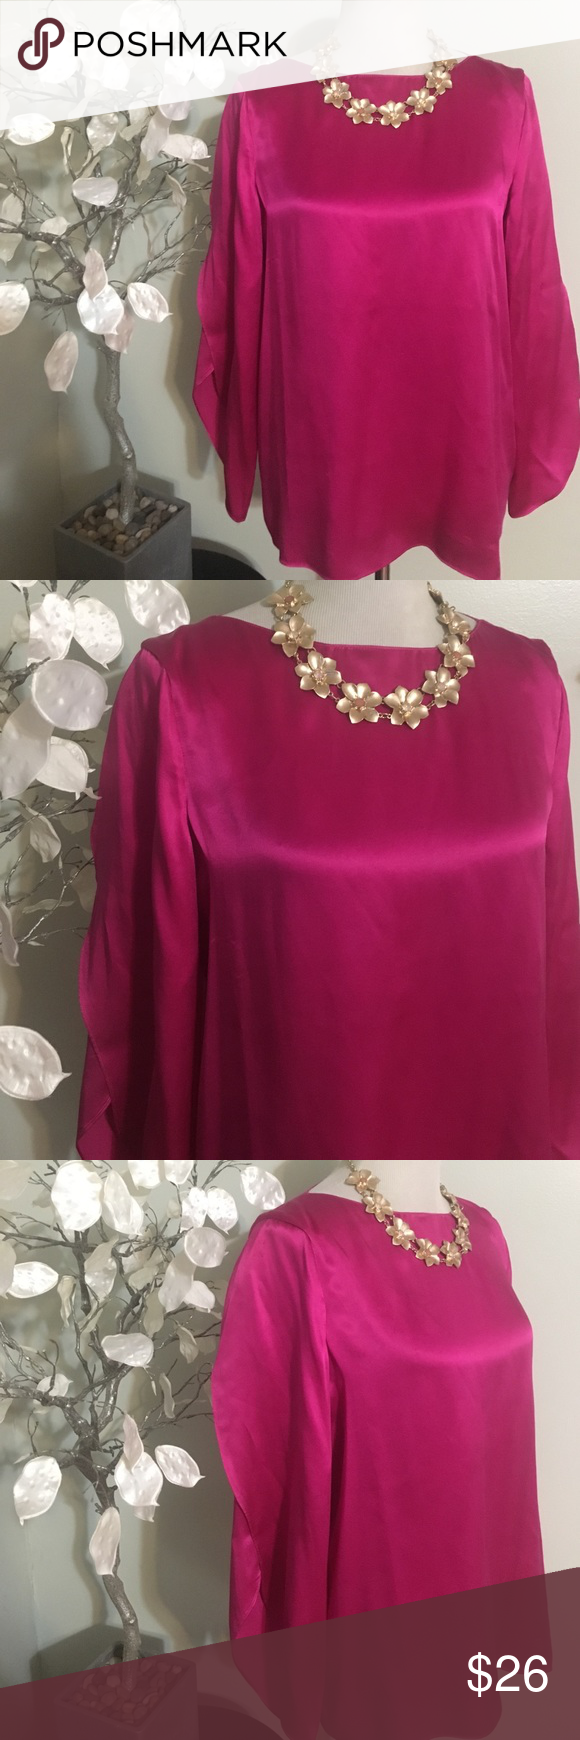 TALBOTS SILK TOP Gorgeous top in excellent condition, 100% silk Talbots Tops Blouses